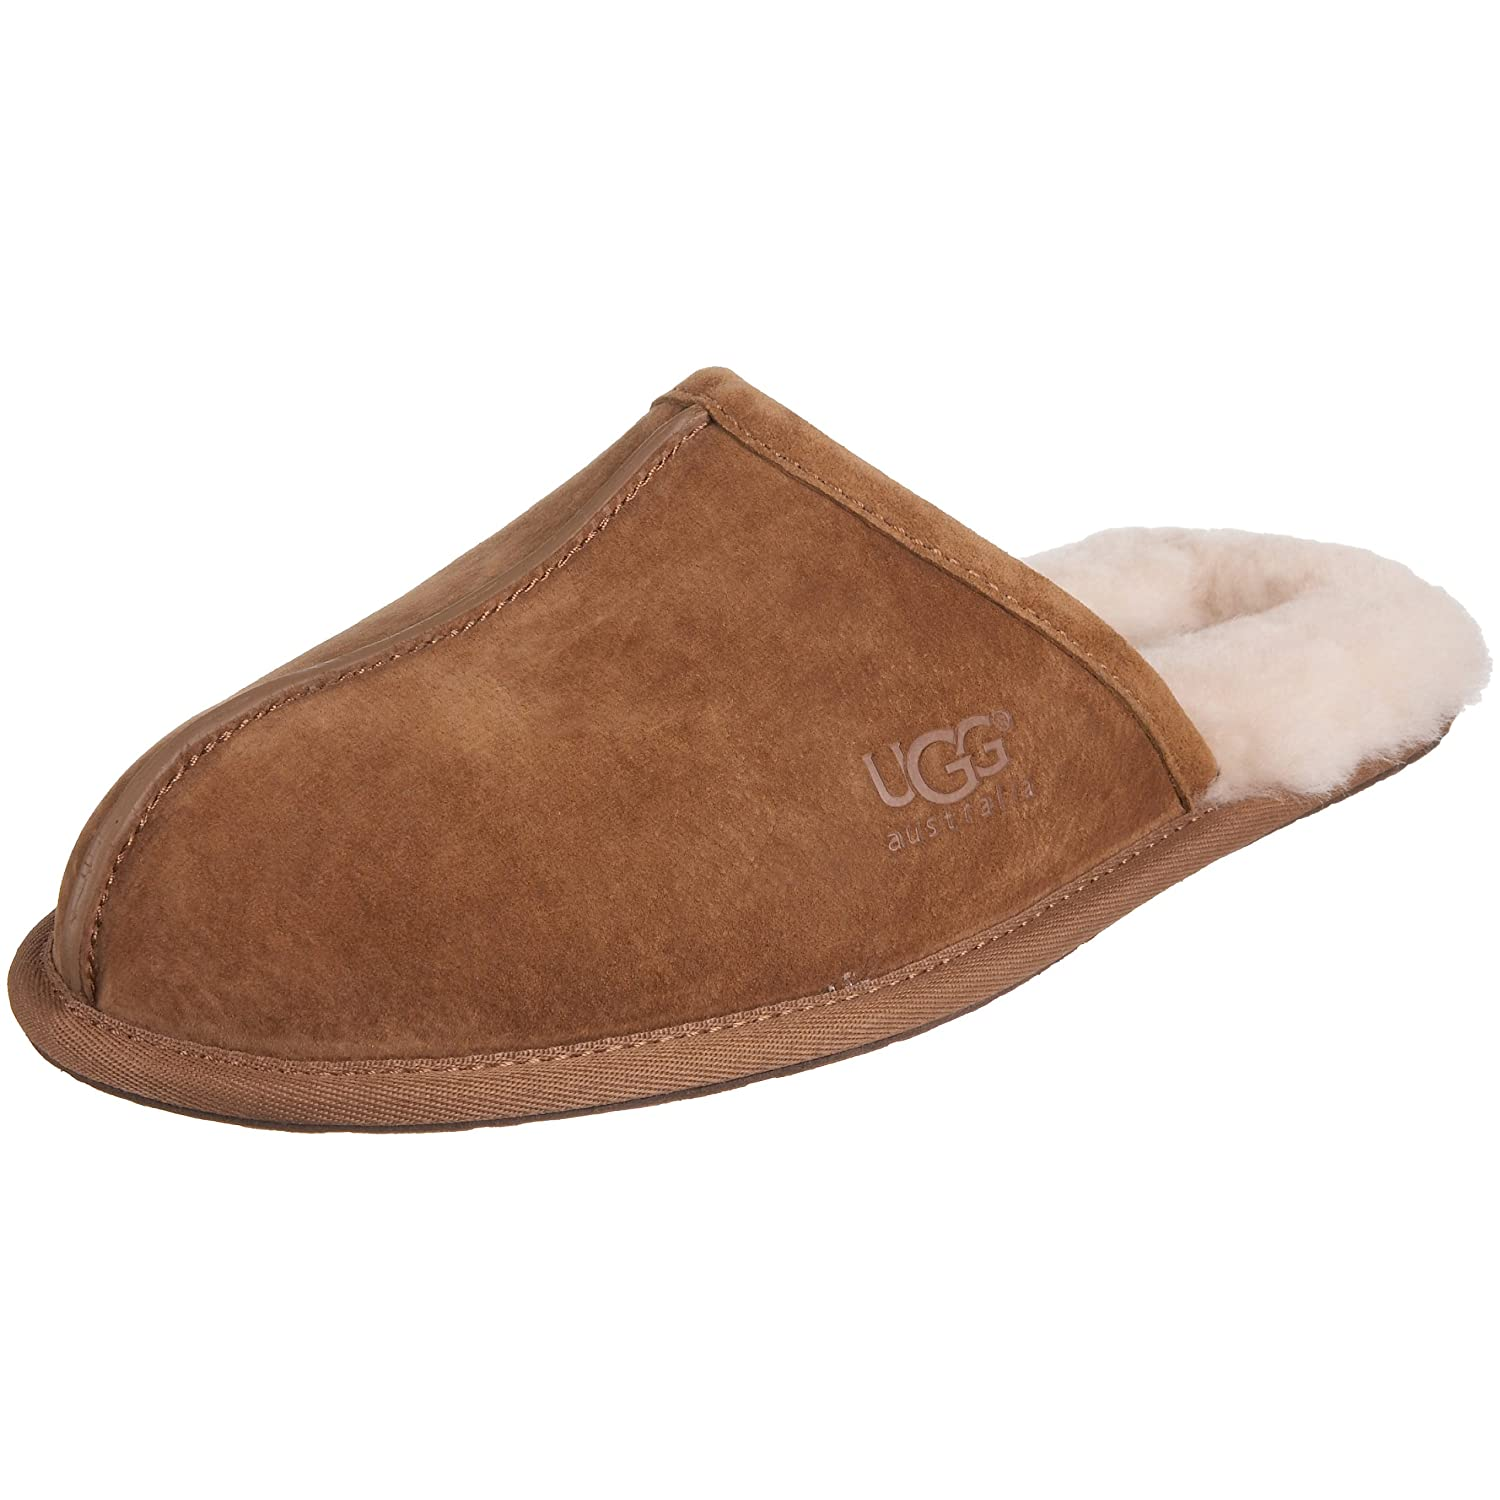 1b11a3b91f8 UGG Men's Scuff Slipper, Chestnut, 7 M US